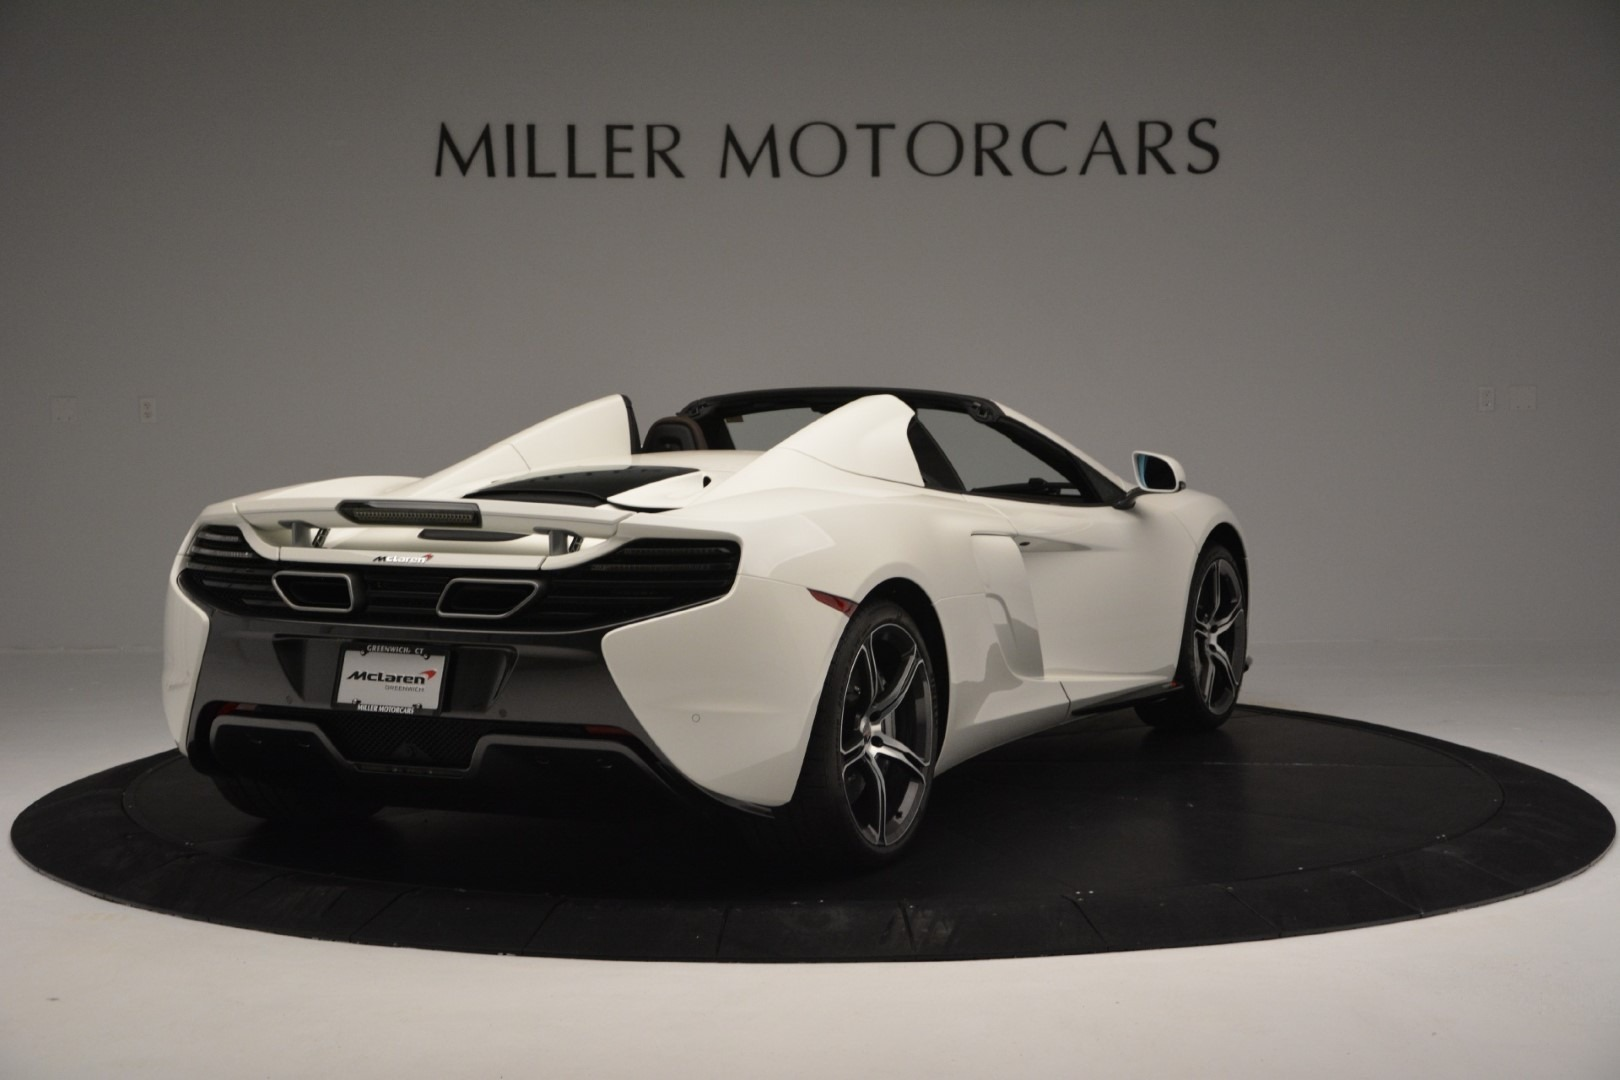 Used 2015 McLaren 650S Convertible For Sale In Greenwich, CT 3219_p6